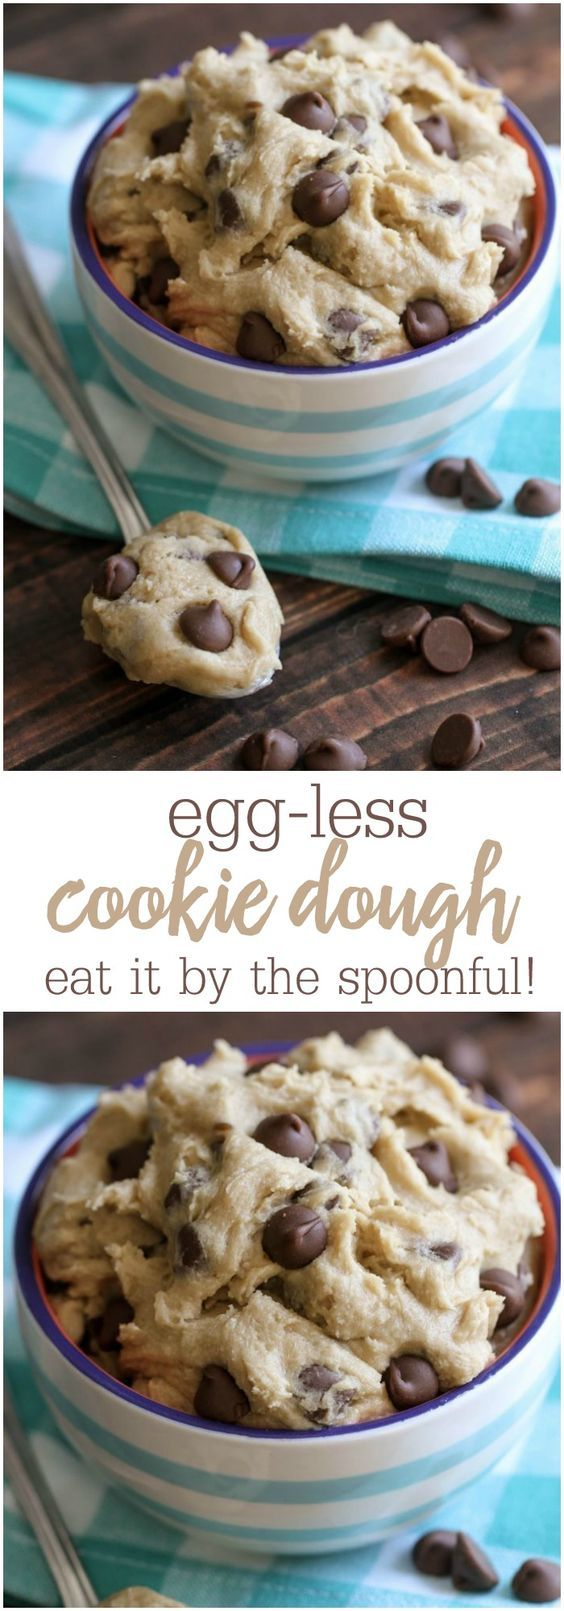 Grab a Spoon!! Egg-less Cookie Dough recipe for all the cookie dough lovers!